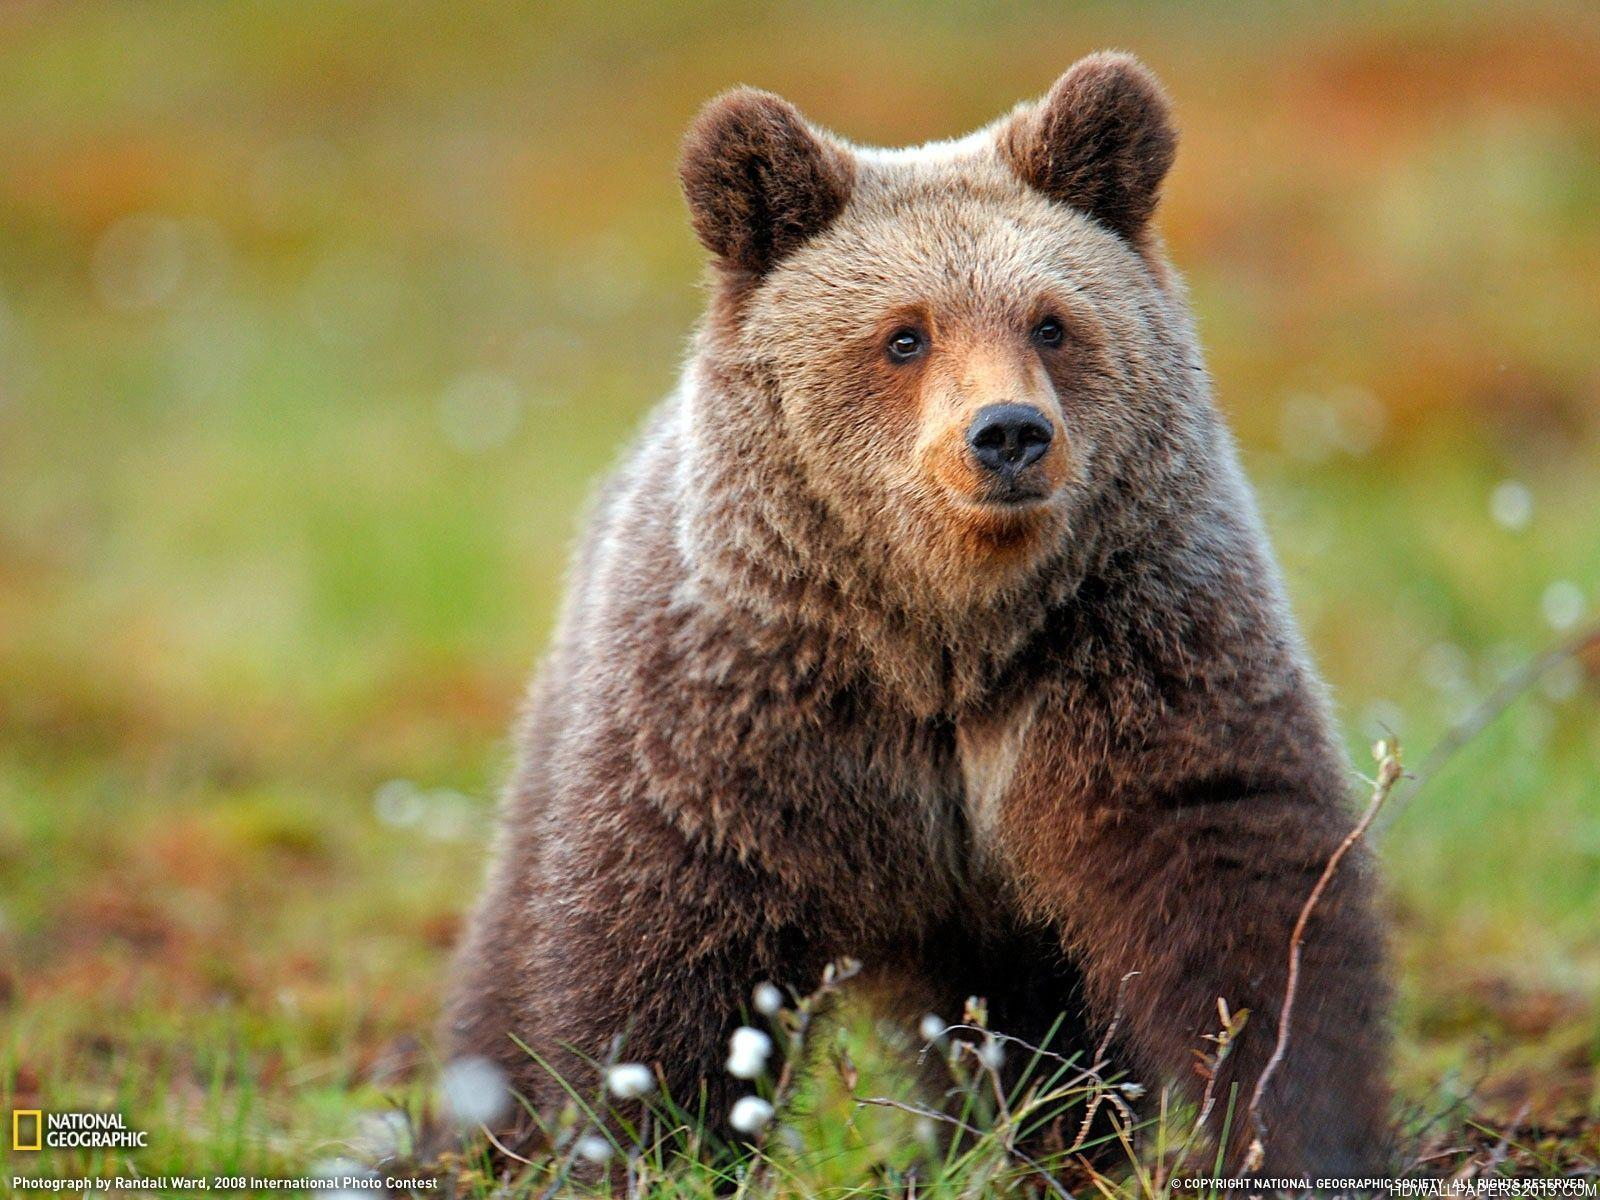 Grizzly Bear Wallpaper | High Definition Wallpapers, High ...